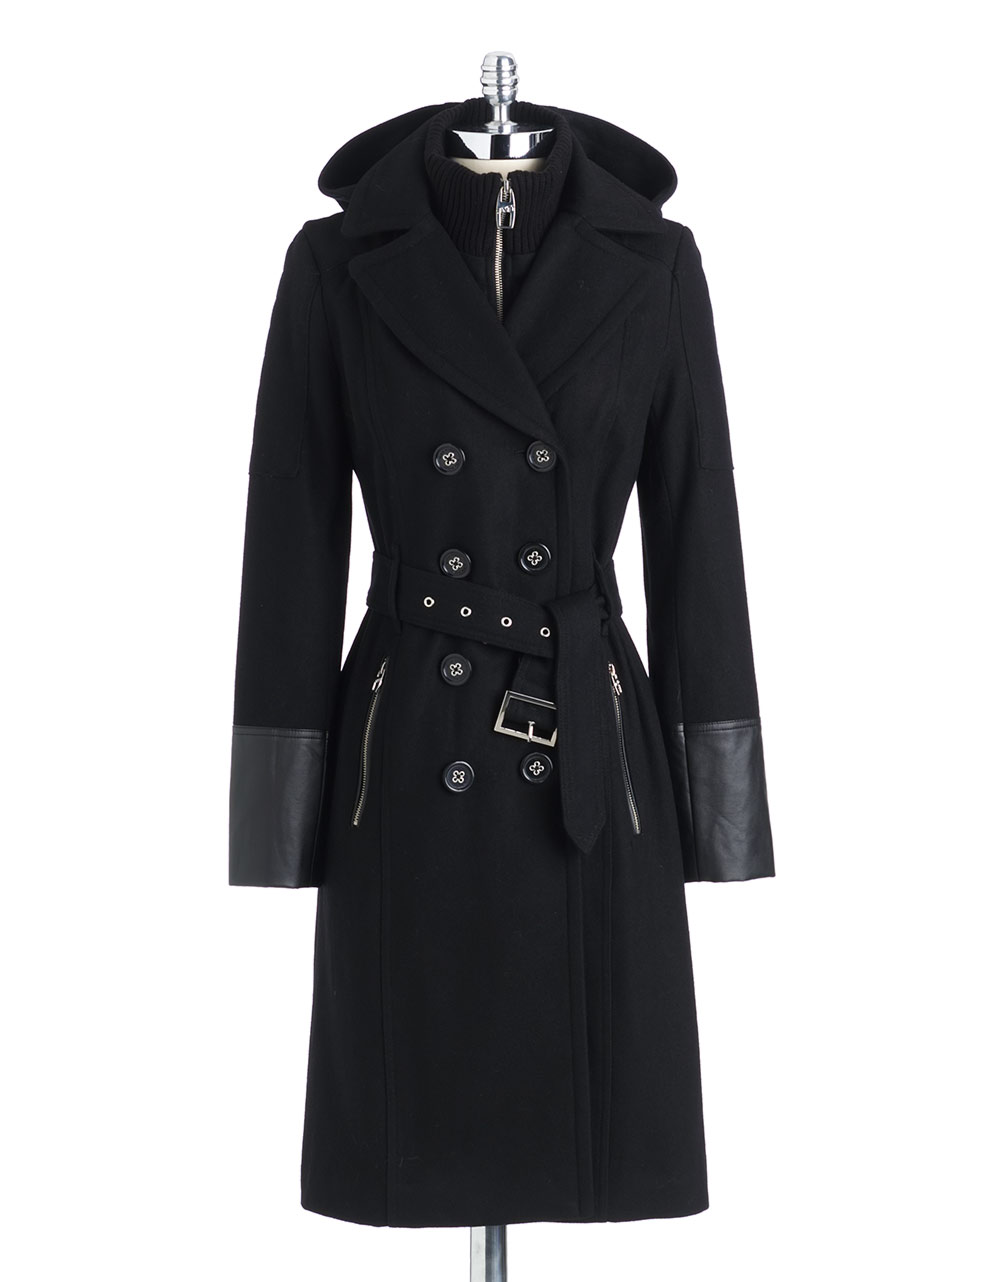 Miss Sixty Faux Leather Trim Hooded Jacket in Black | Lyst